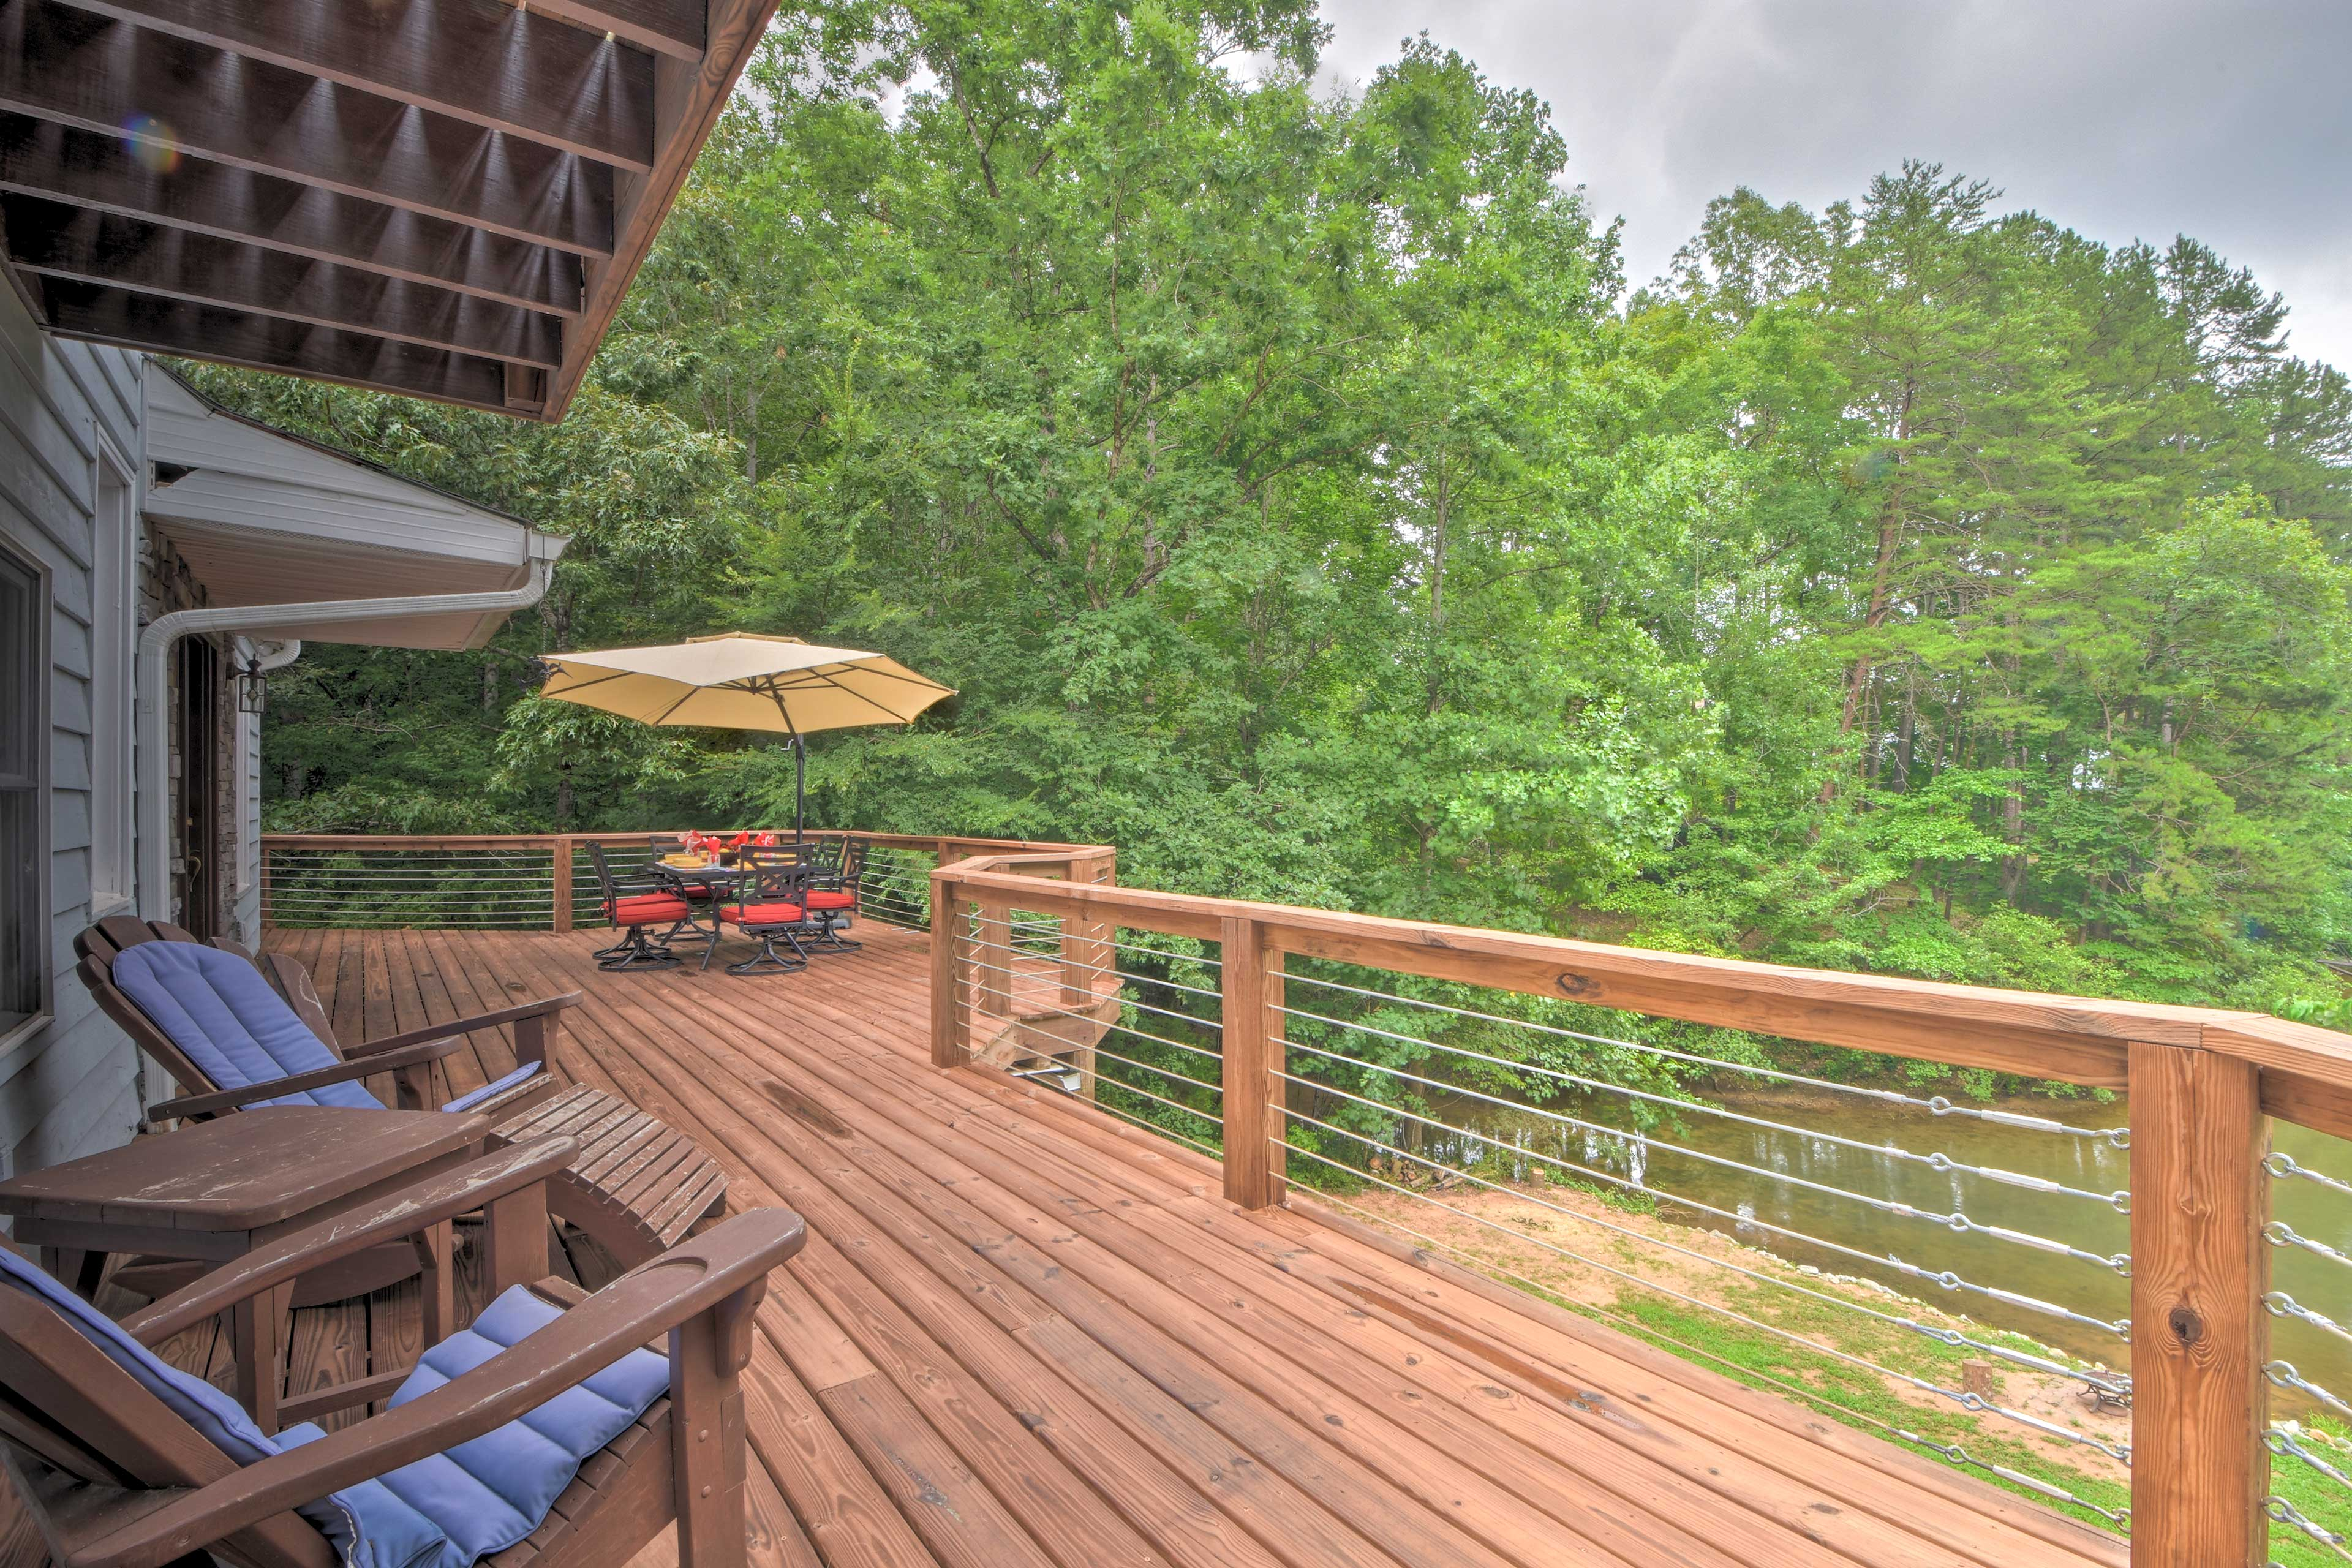 Kick back, relax and enjoy lakefront living at its finest!